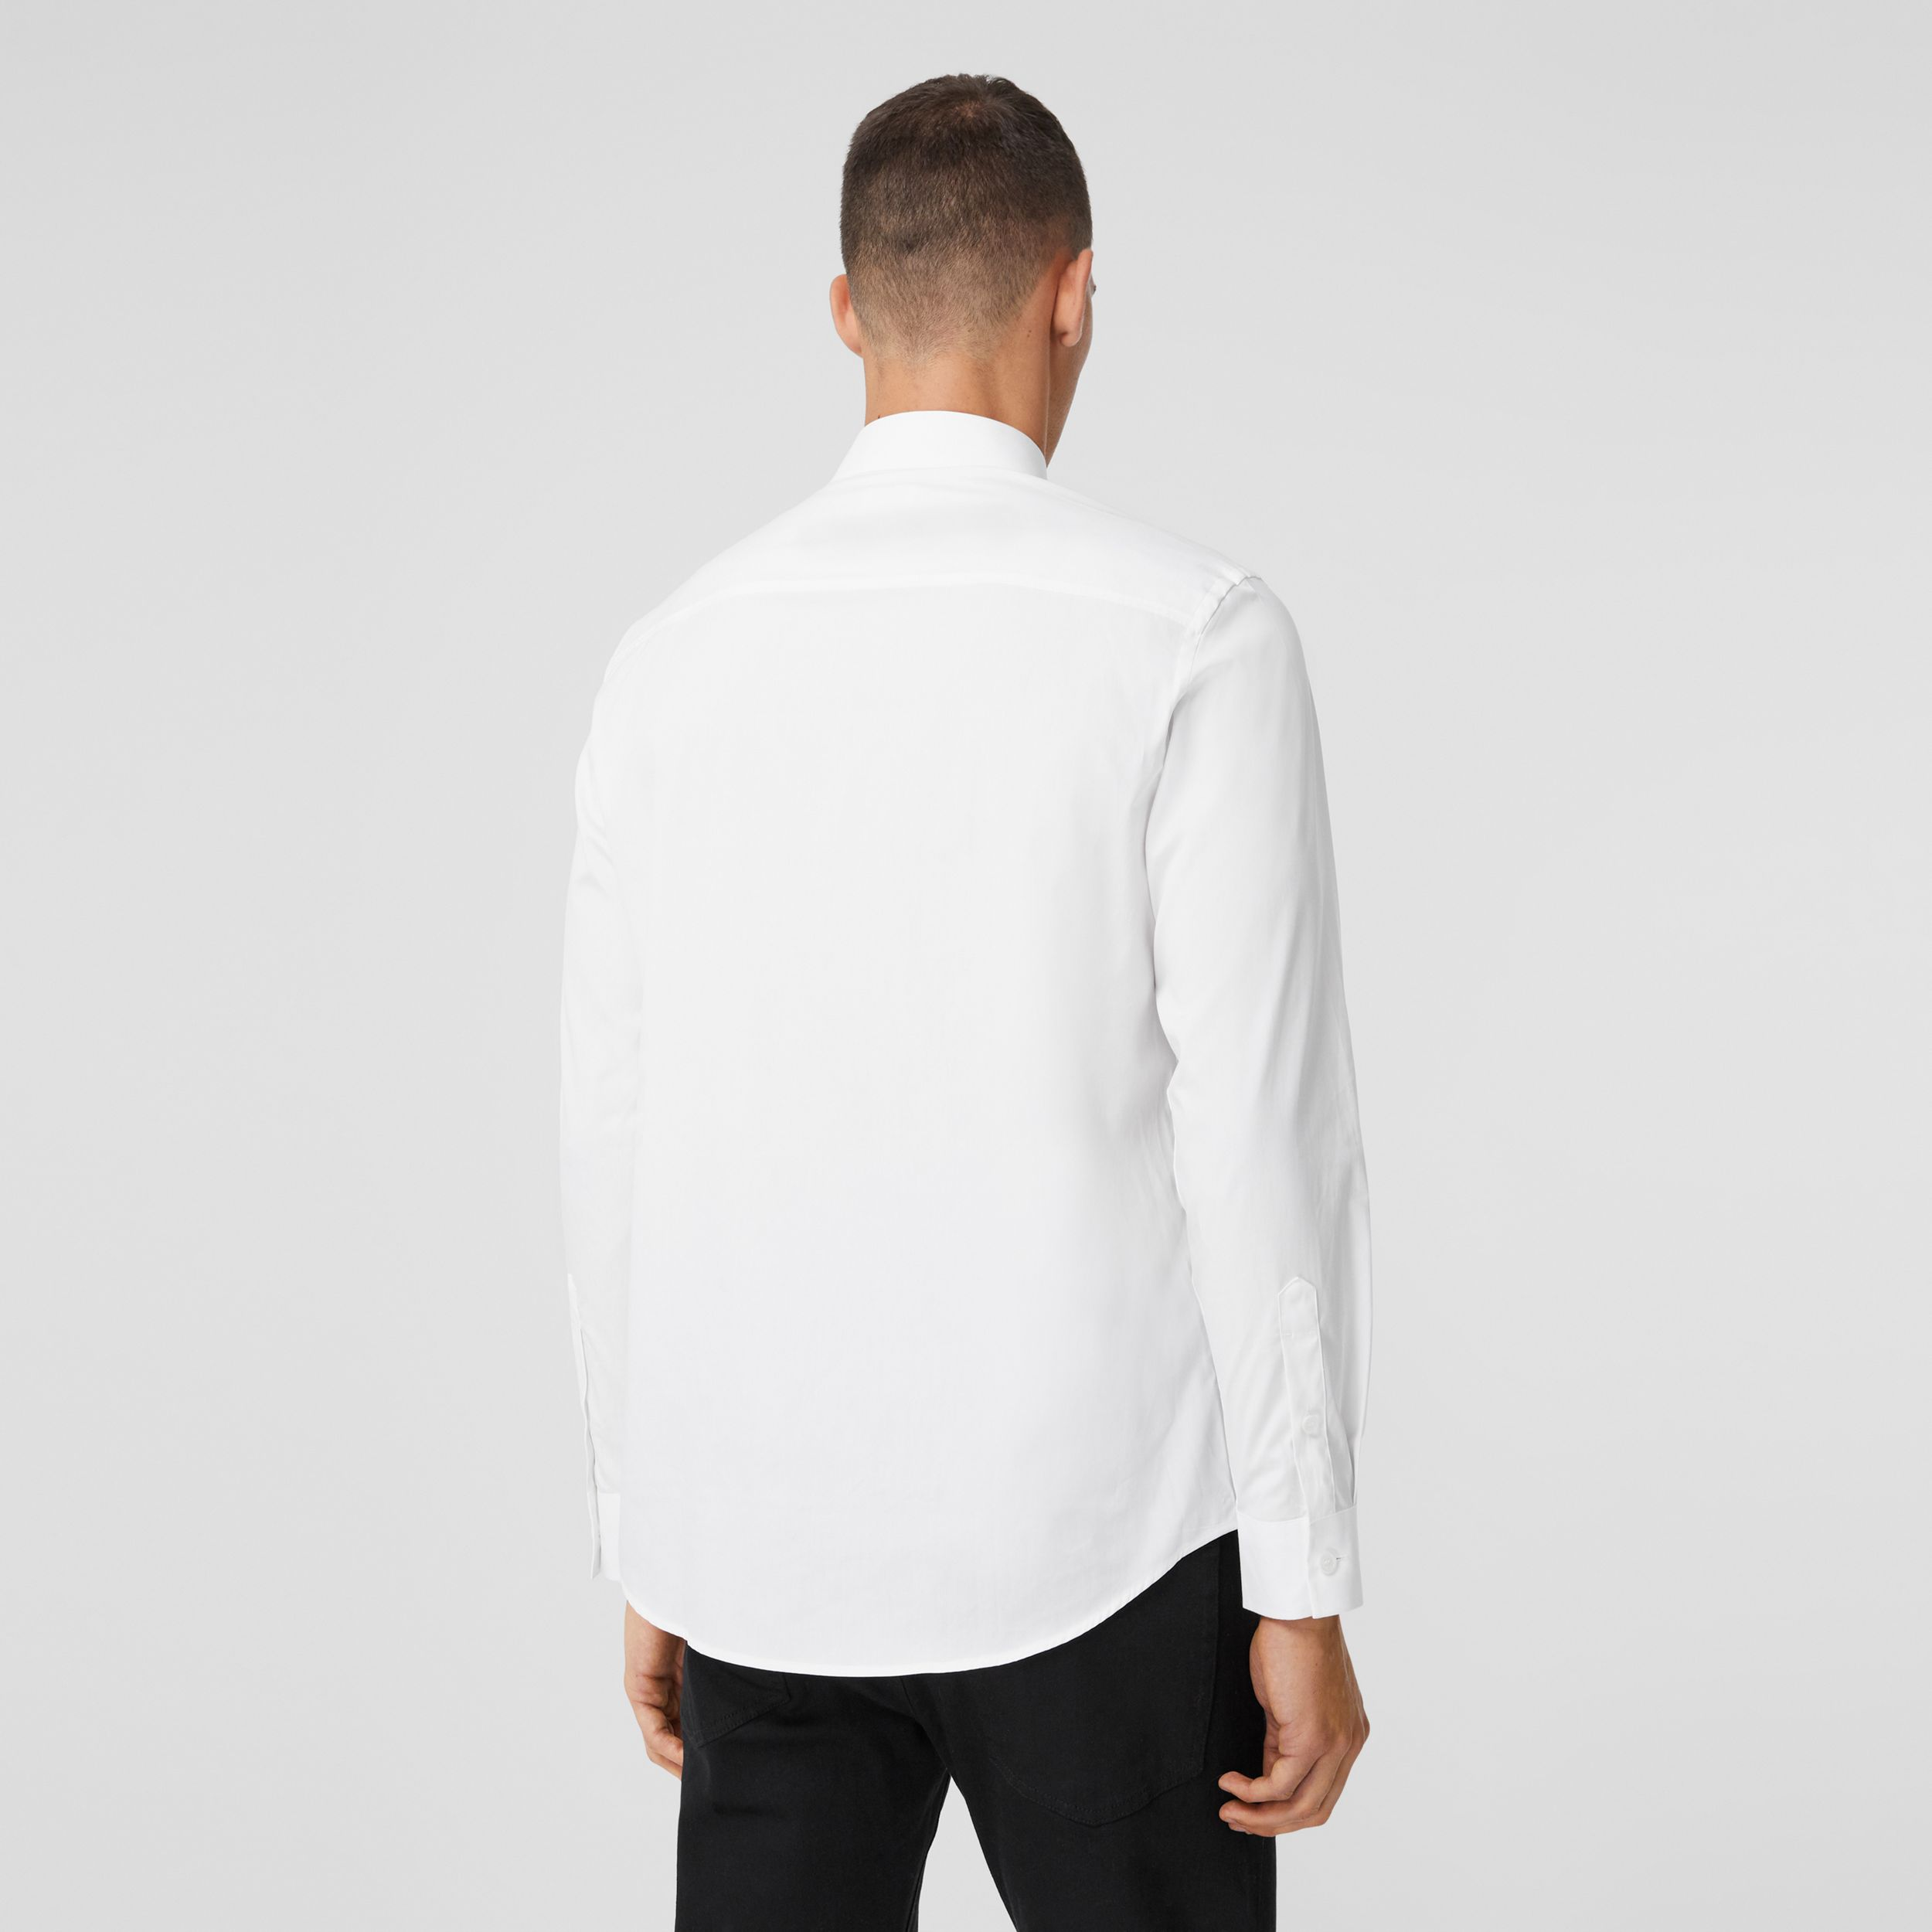 Monogrom Motif Stretch Cotton Poplin Shirt in White - Men | Burberry - 3